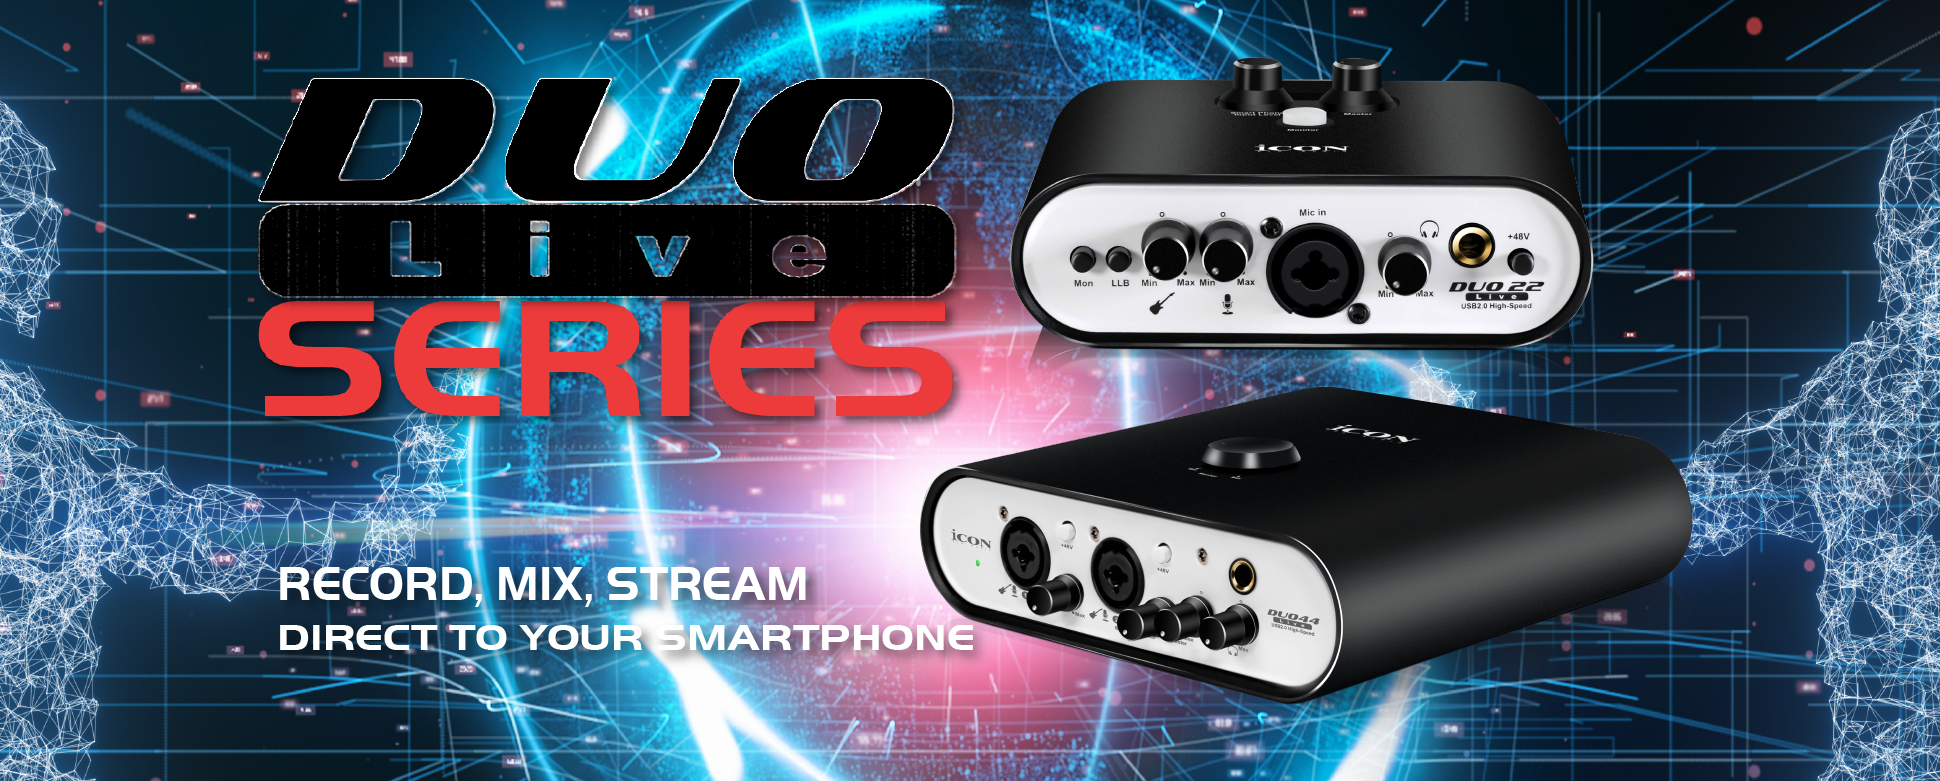 Duo Series Audio Interfaces: Duo 22 Live and Duo 44 Live for recording, mixing, and streaming